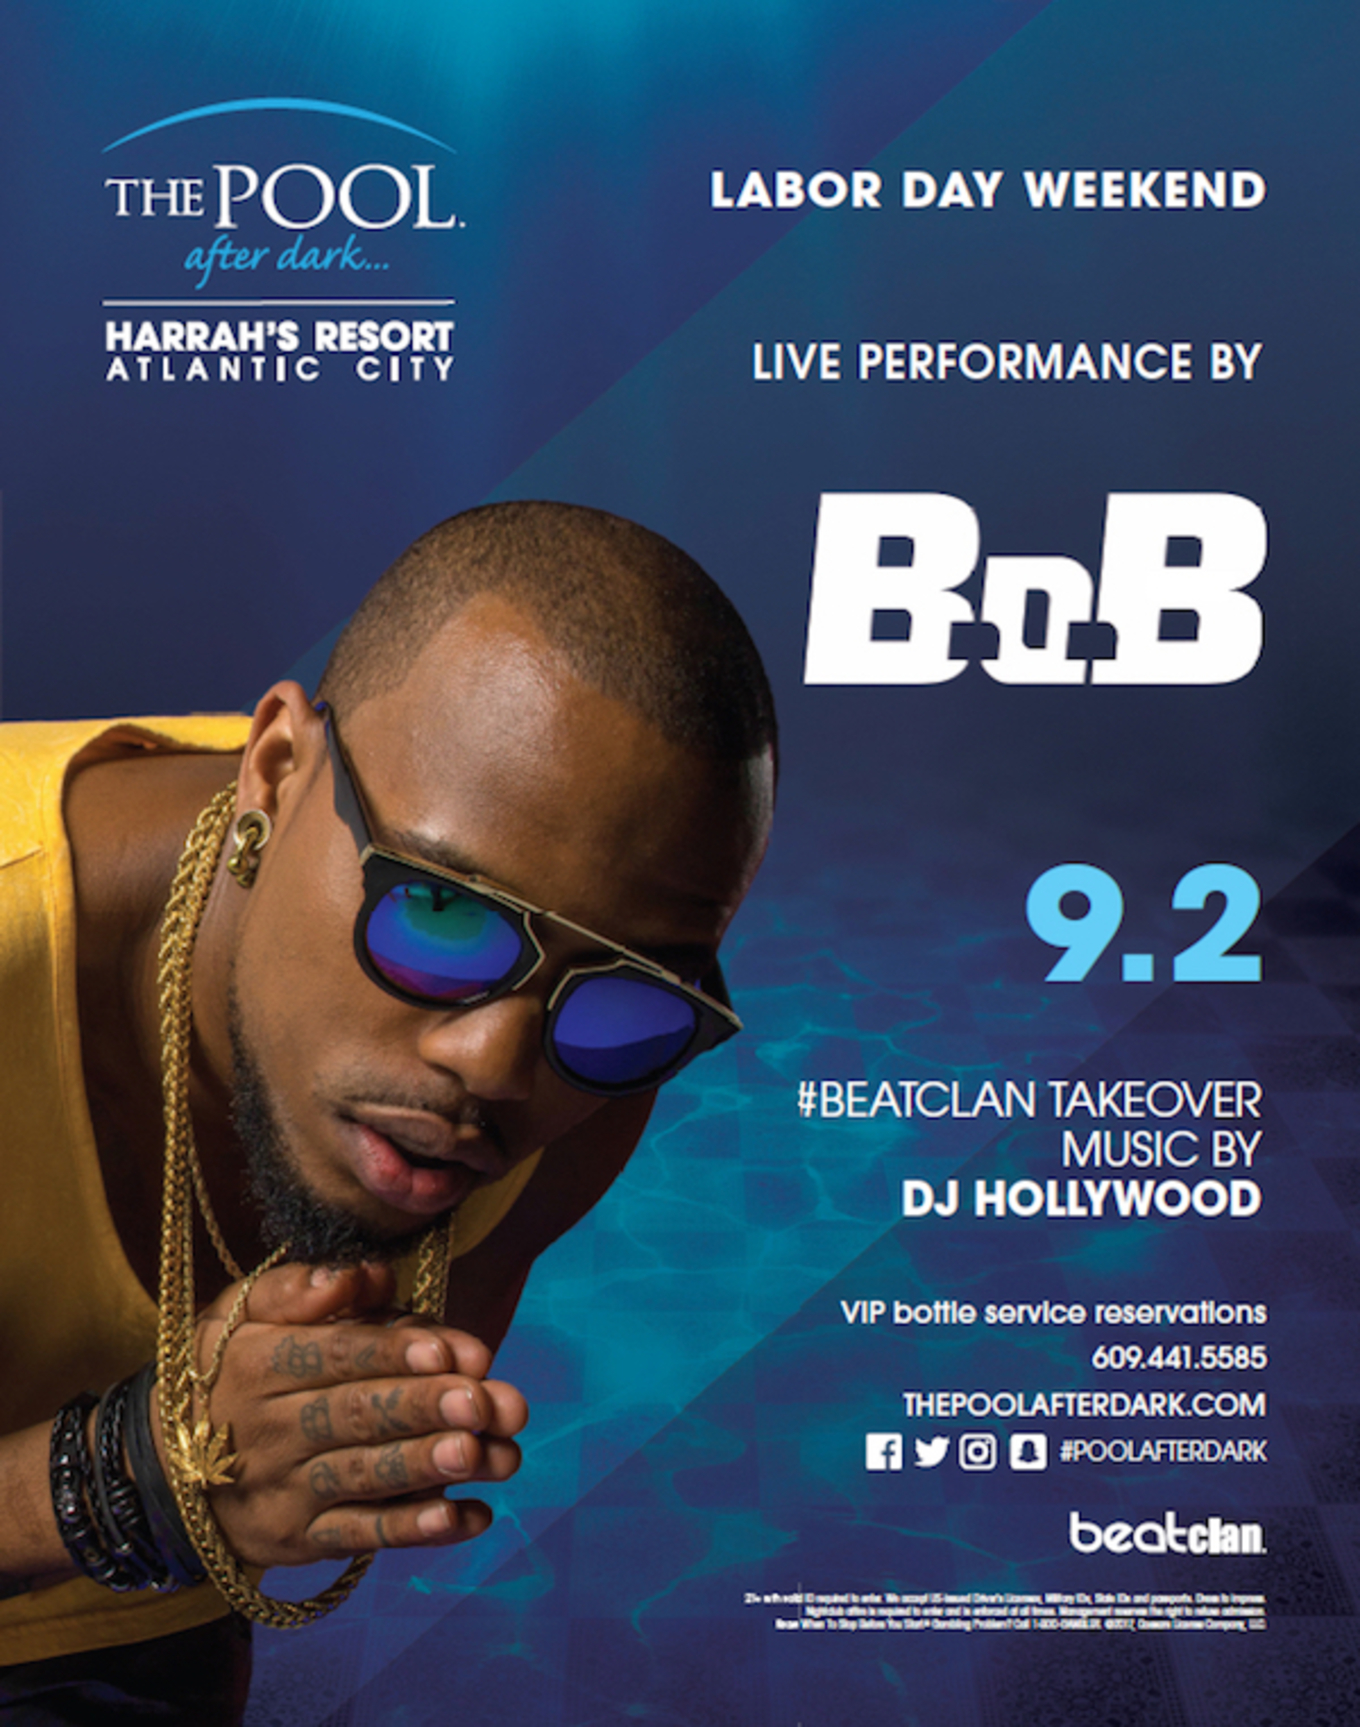 The Pool After Dark - Events and Tickets   NIGHTOUT